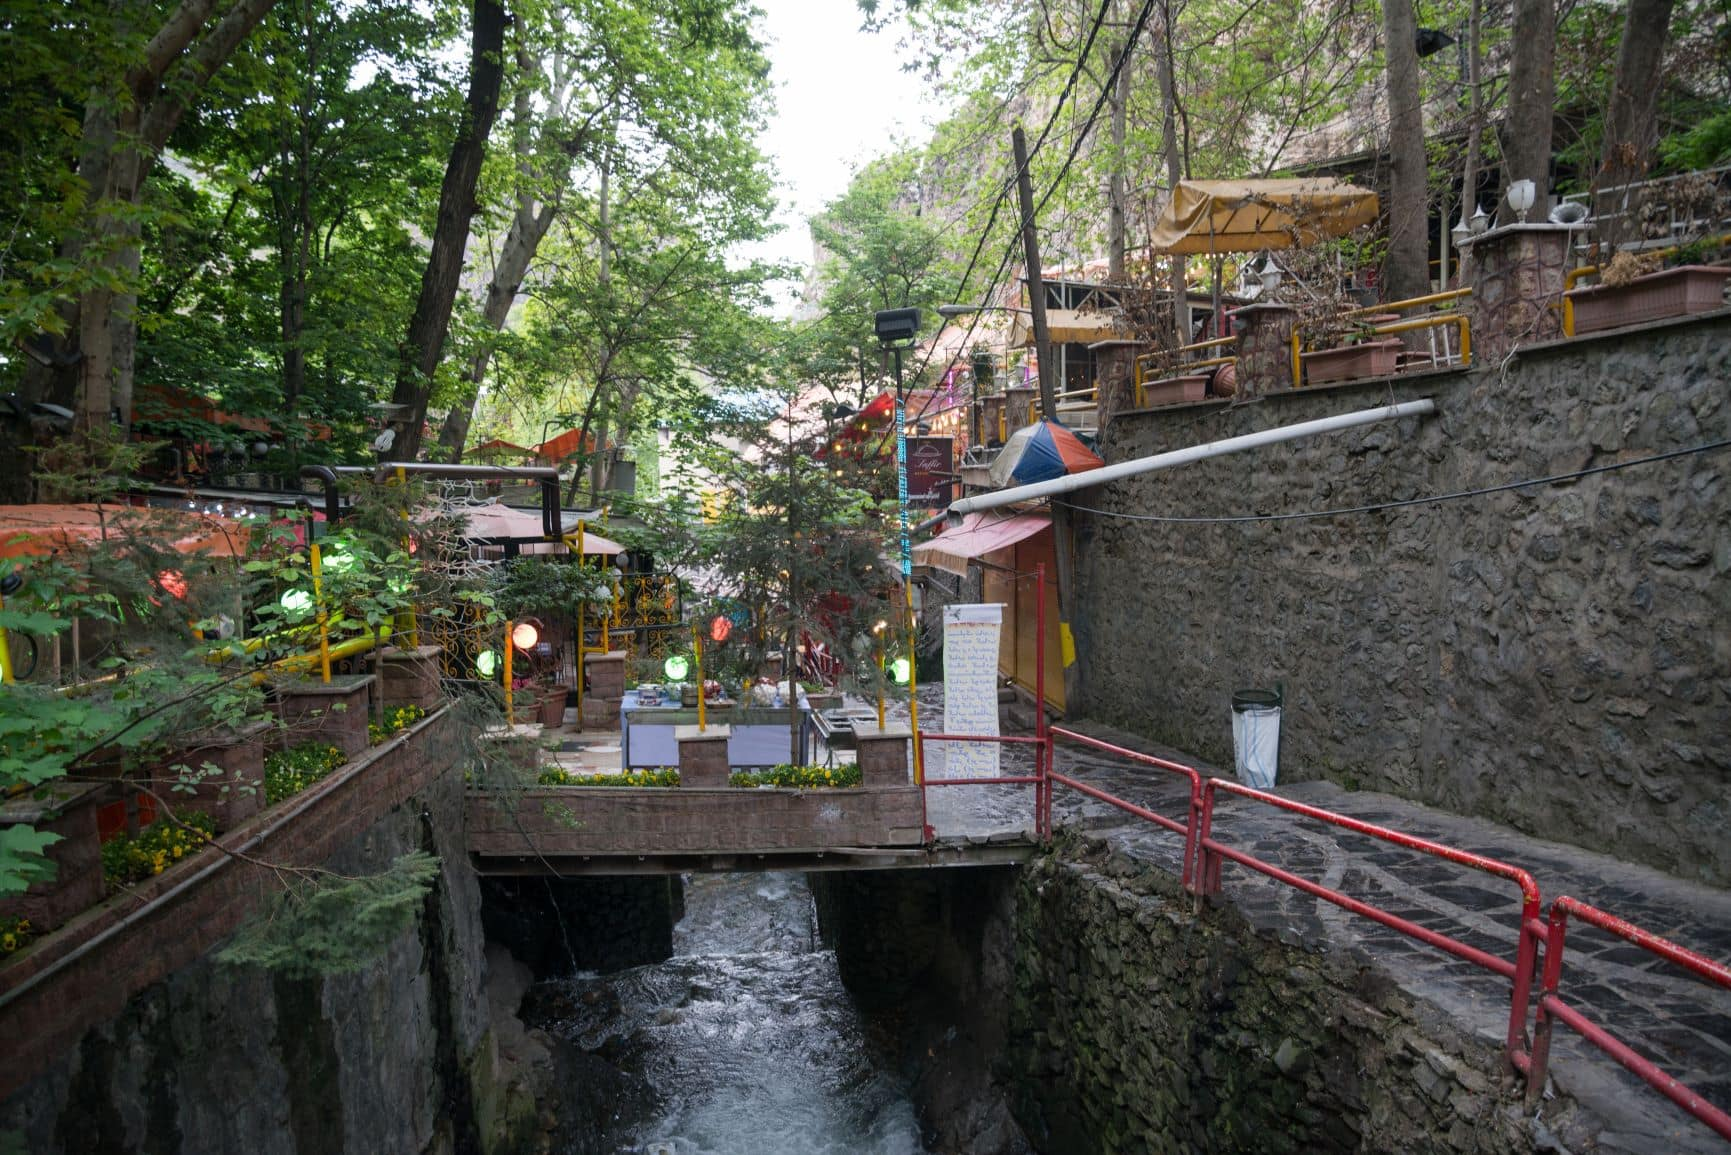 Darband in Teheran